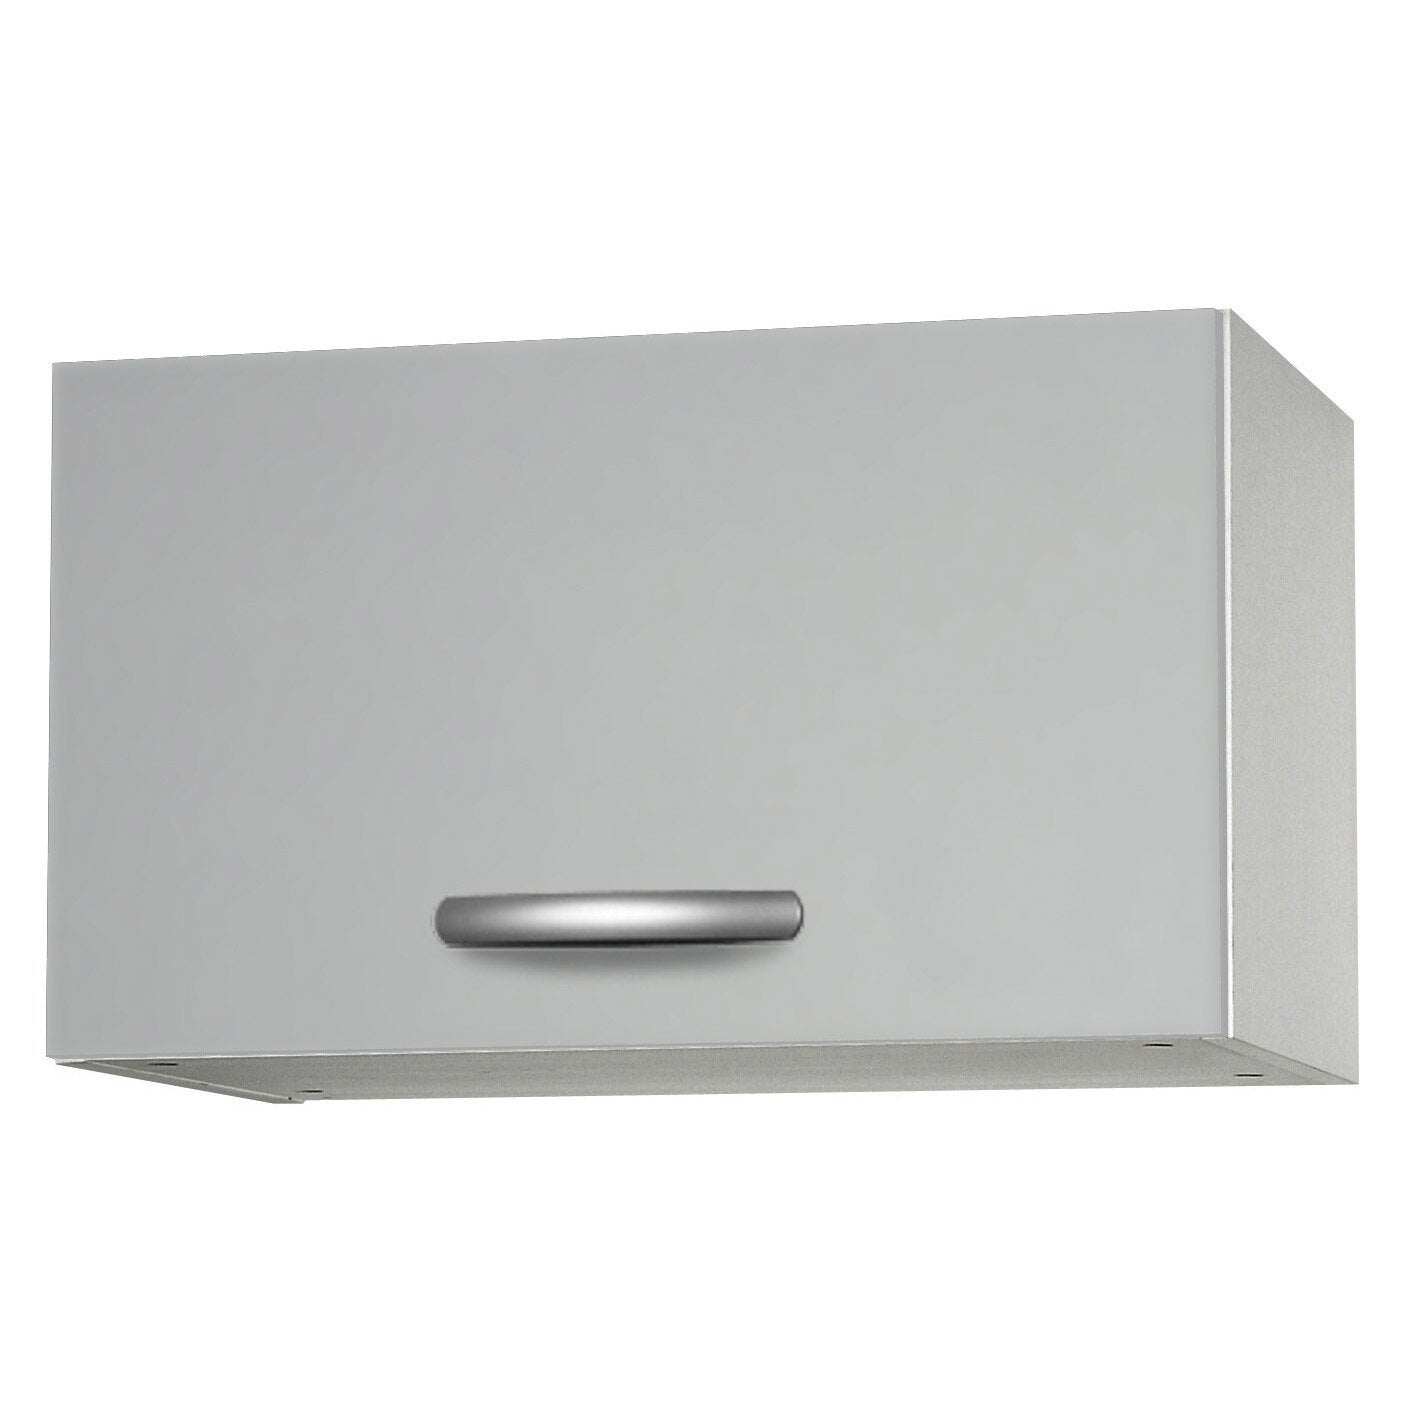 Meuble de cuisine haut 1 porte gris aluminium for Portes elements cuisine leroy merlin